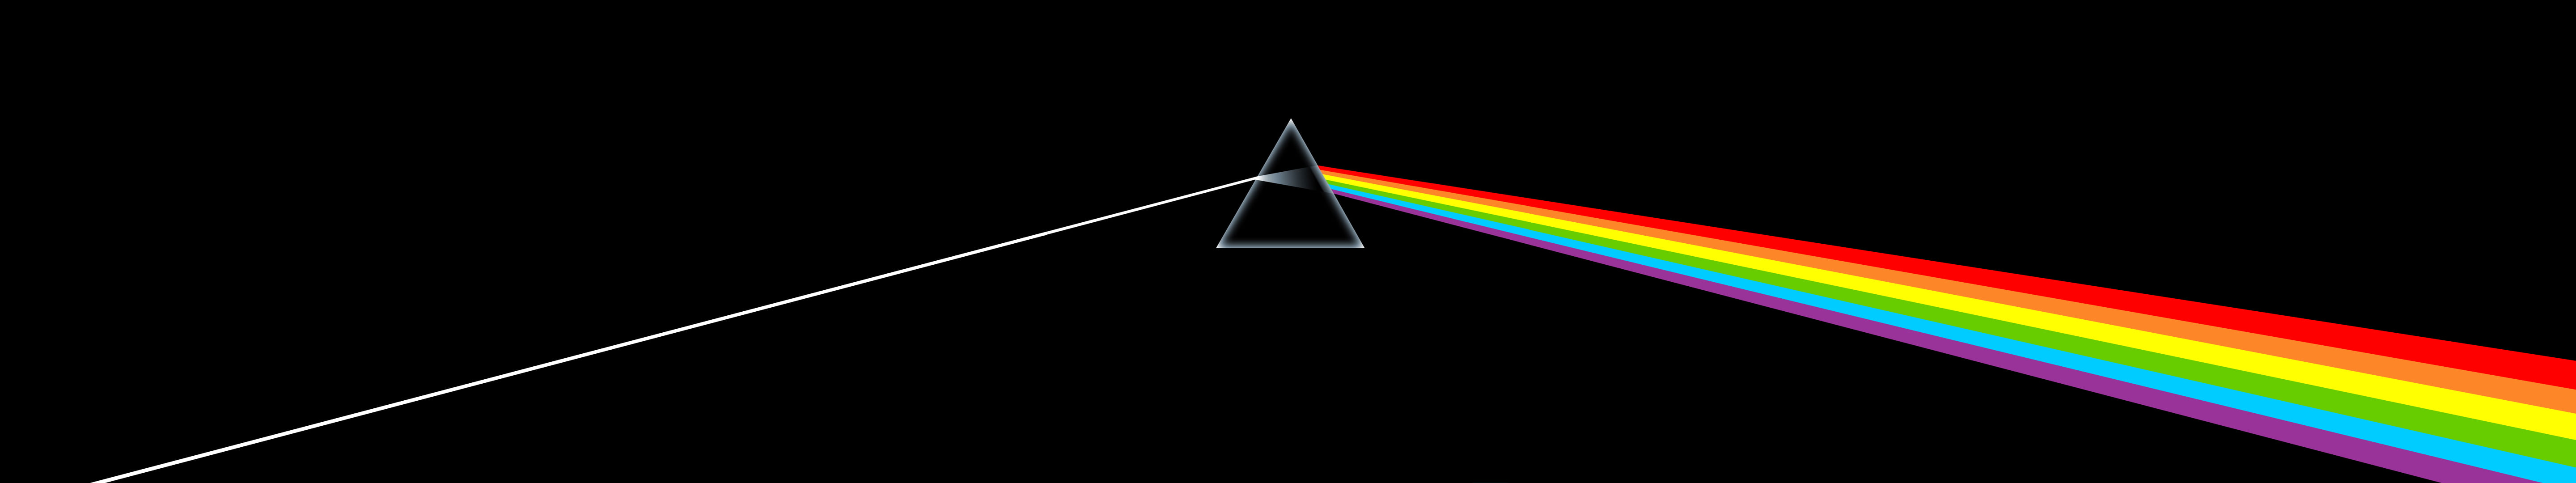 Dark Side Of The Moon Wallpaper 14956 Hd Wallpapers Earth Rise